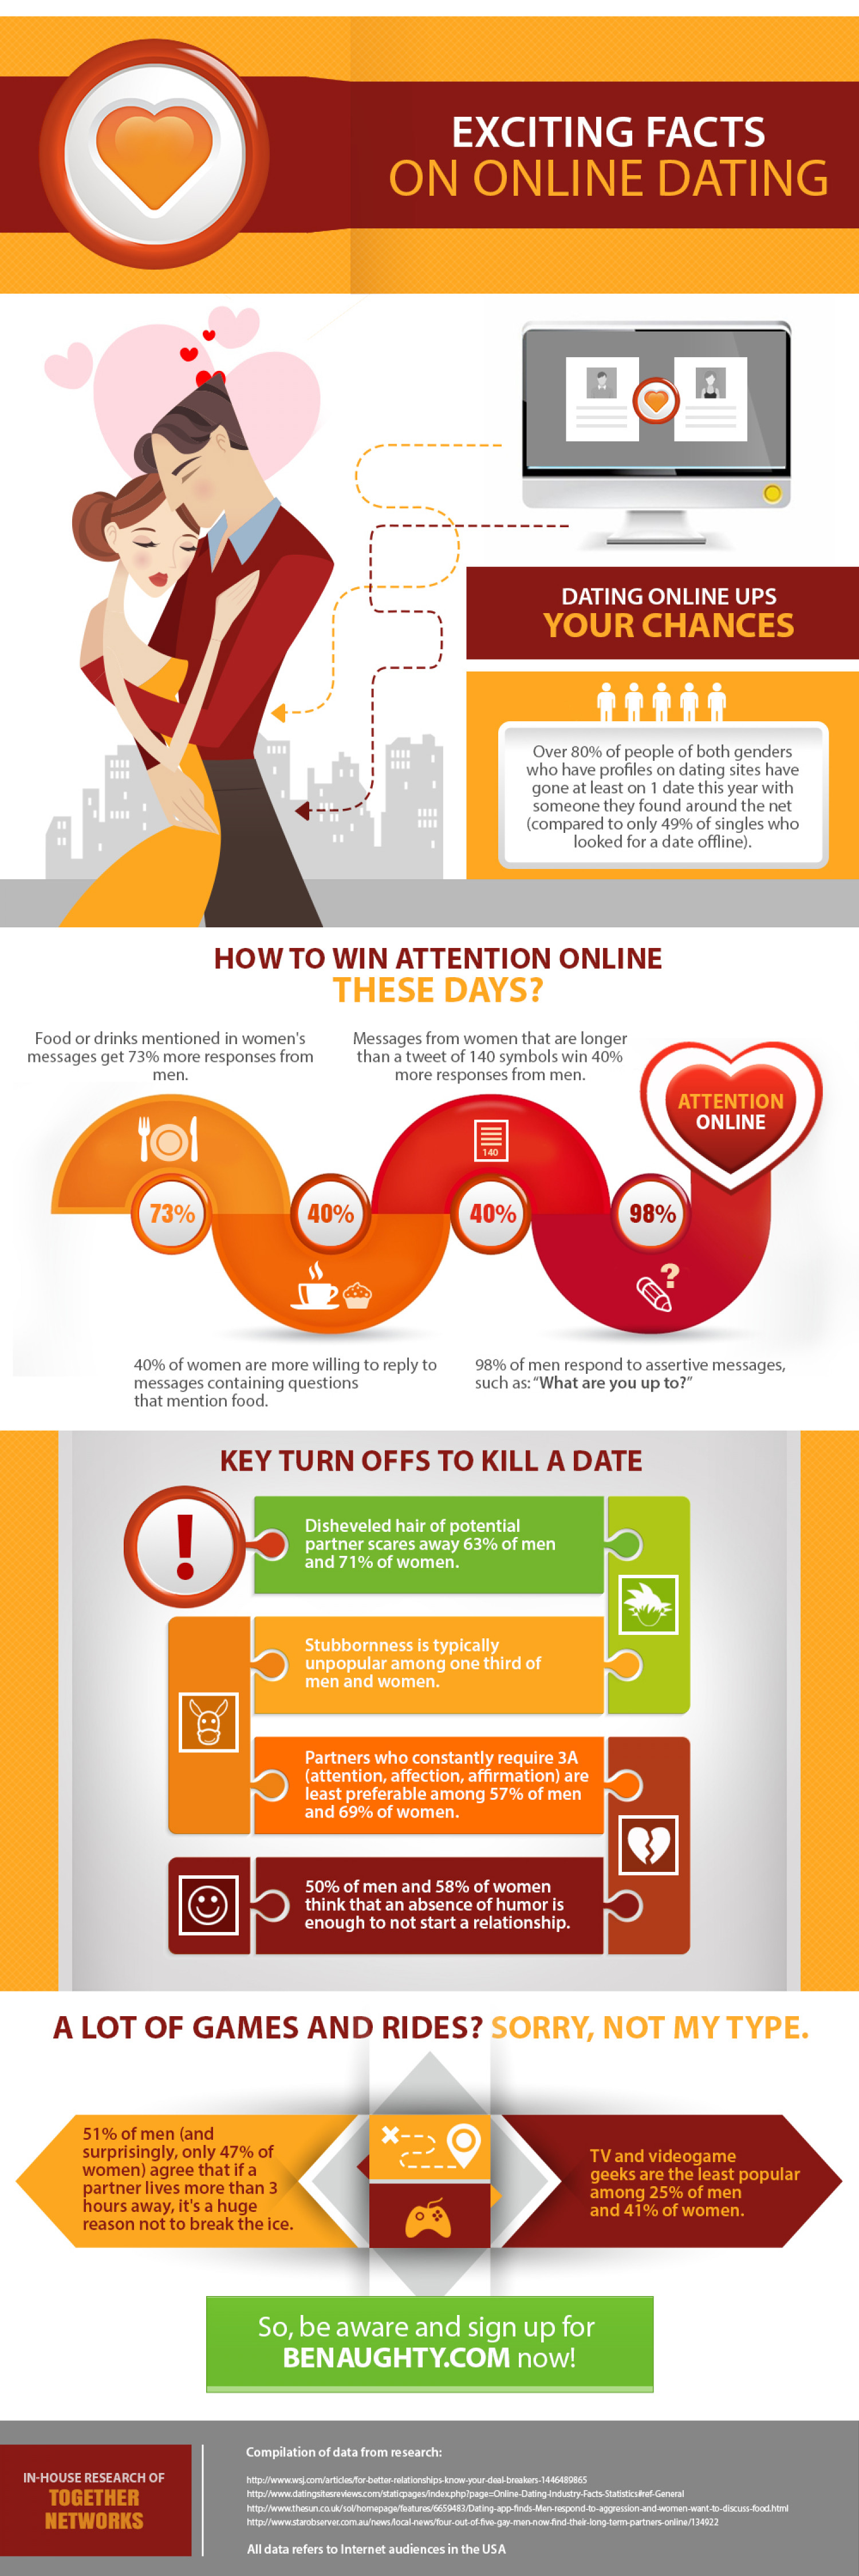 BeNaughty.com - Infographic With True Dating Facts Revealed by Benaughty.com Infographic